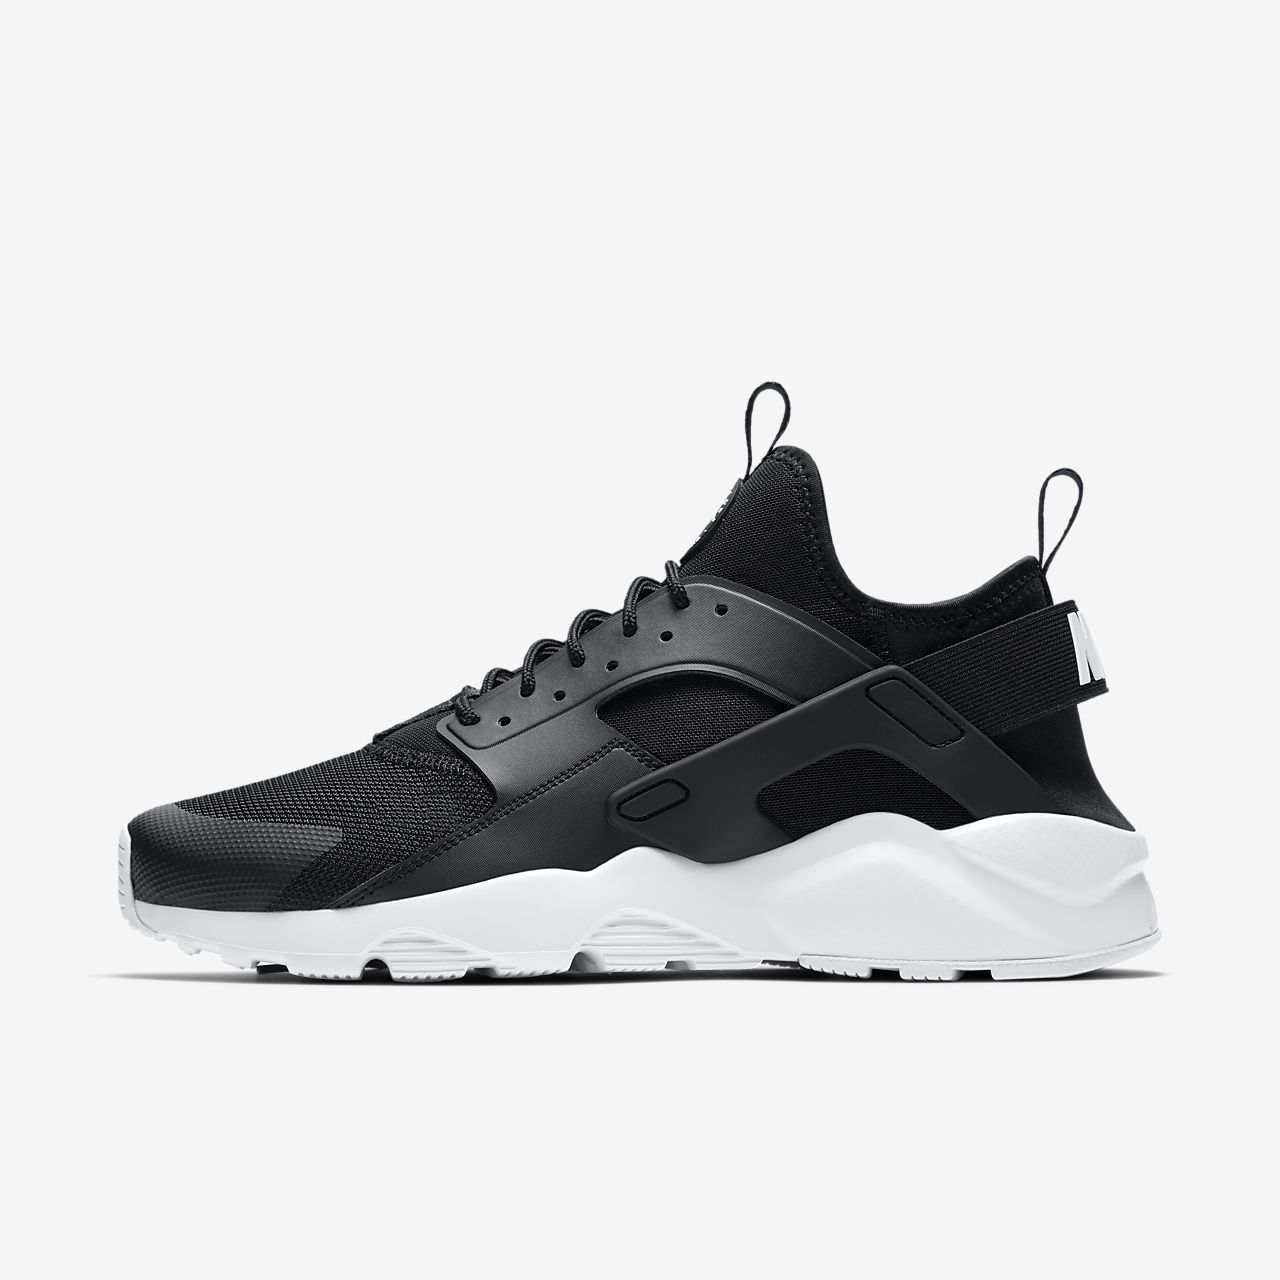 4733d15d2296 Nike Air Huarache Ultra Men s Shoe. Nike.com GB